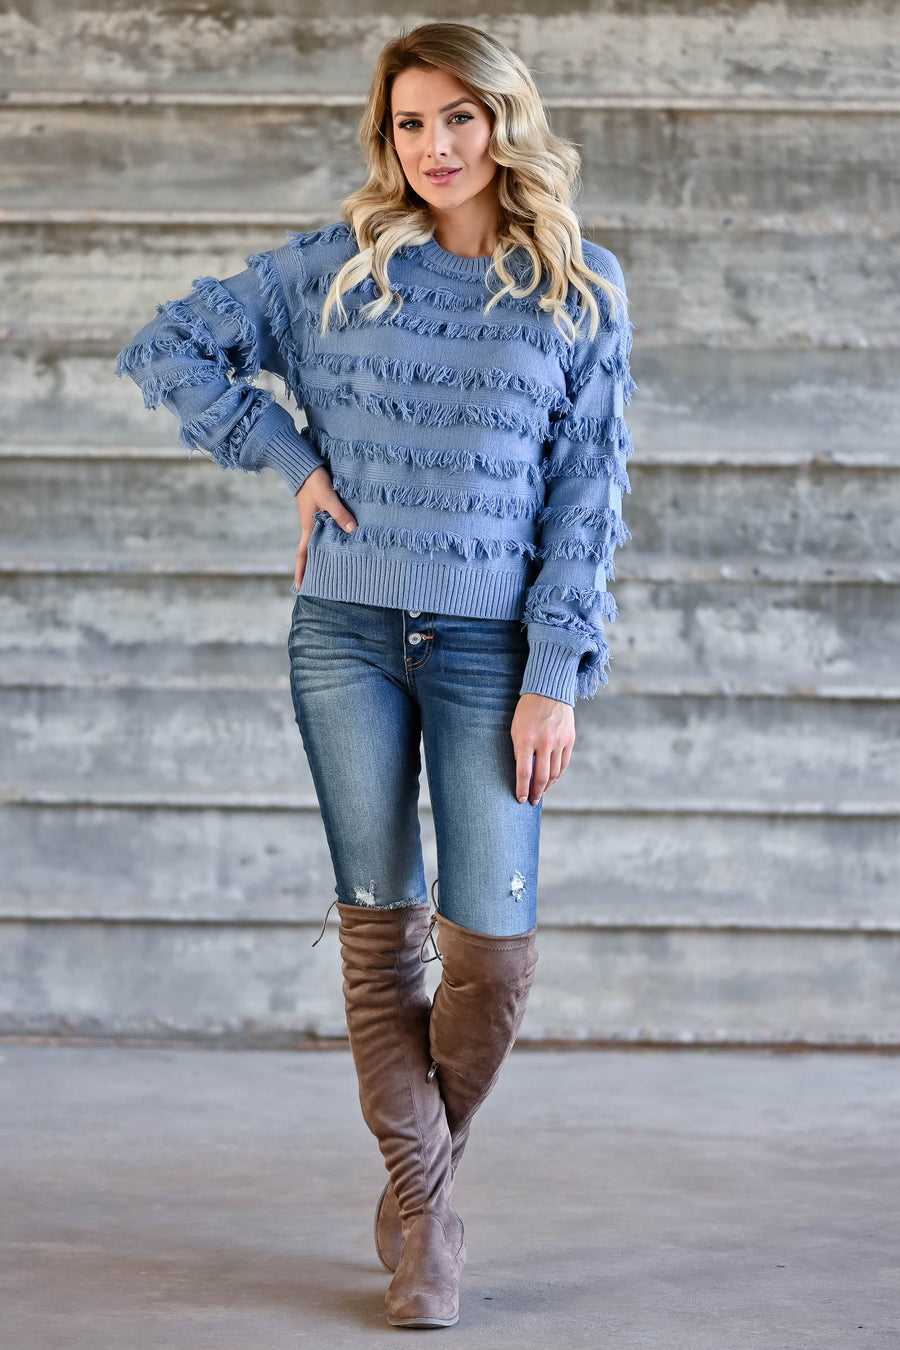 Fringe Benefits Sweater - Dusty Blue womens trendy knit pullover with fringe detail closet candy front